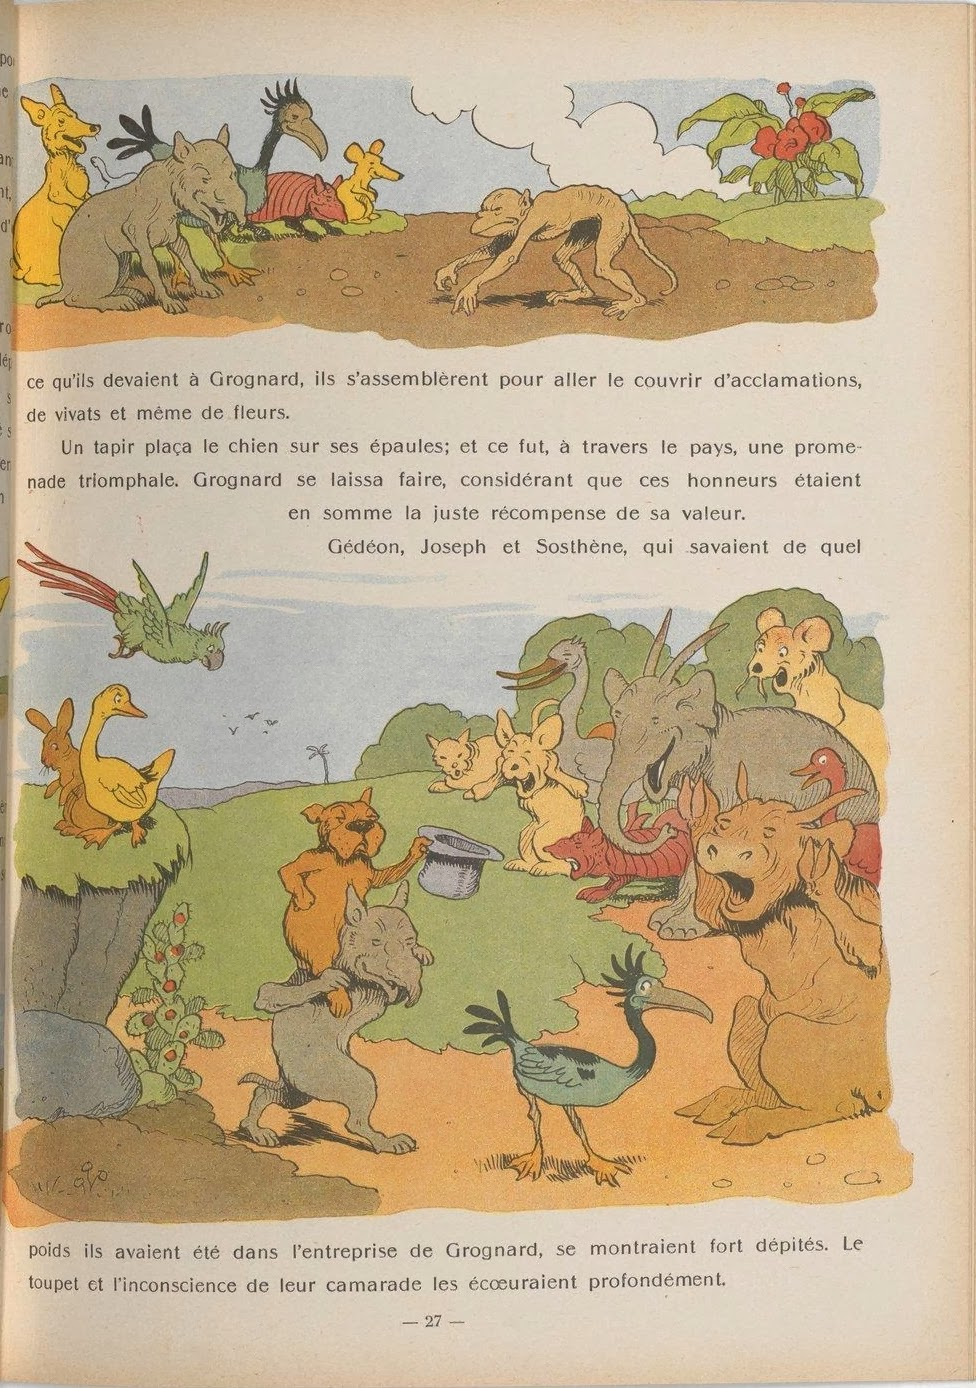 hilarious book illustration scenes of animals behaving like humans in French children's book 1933